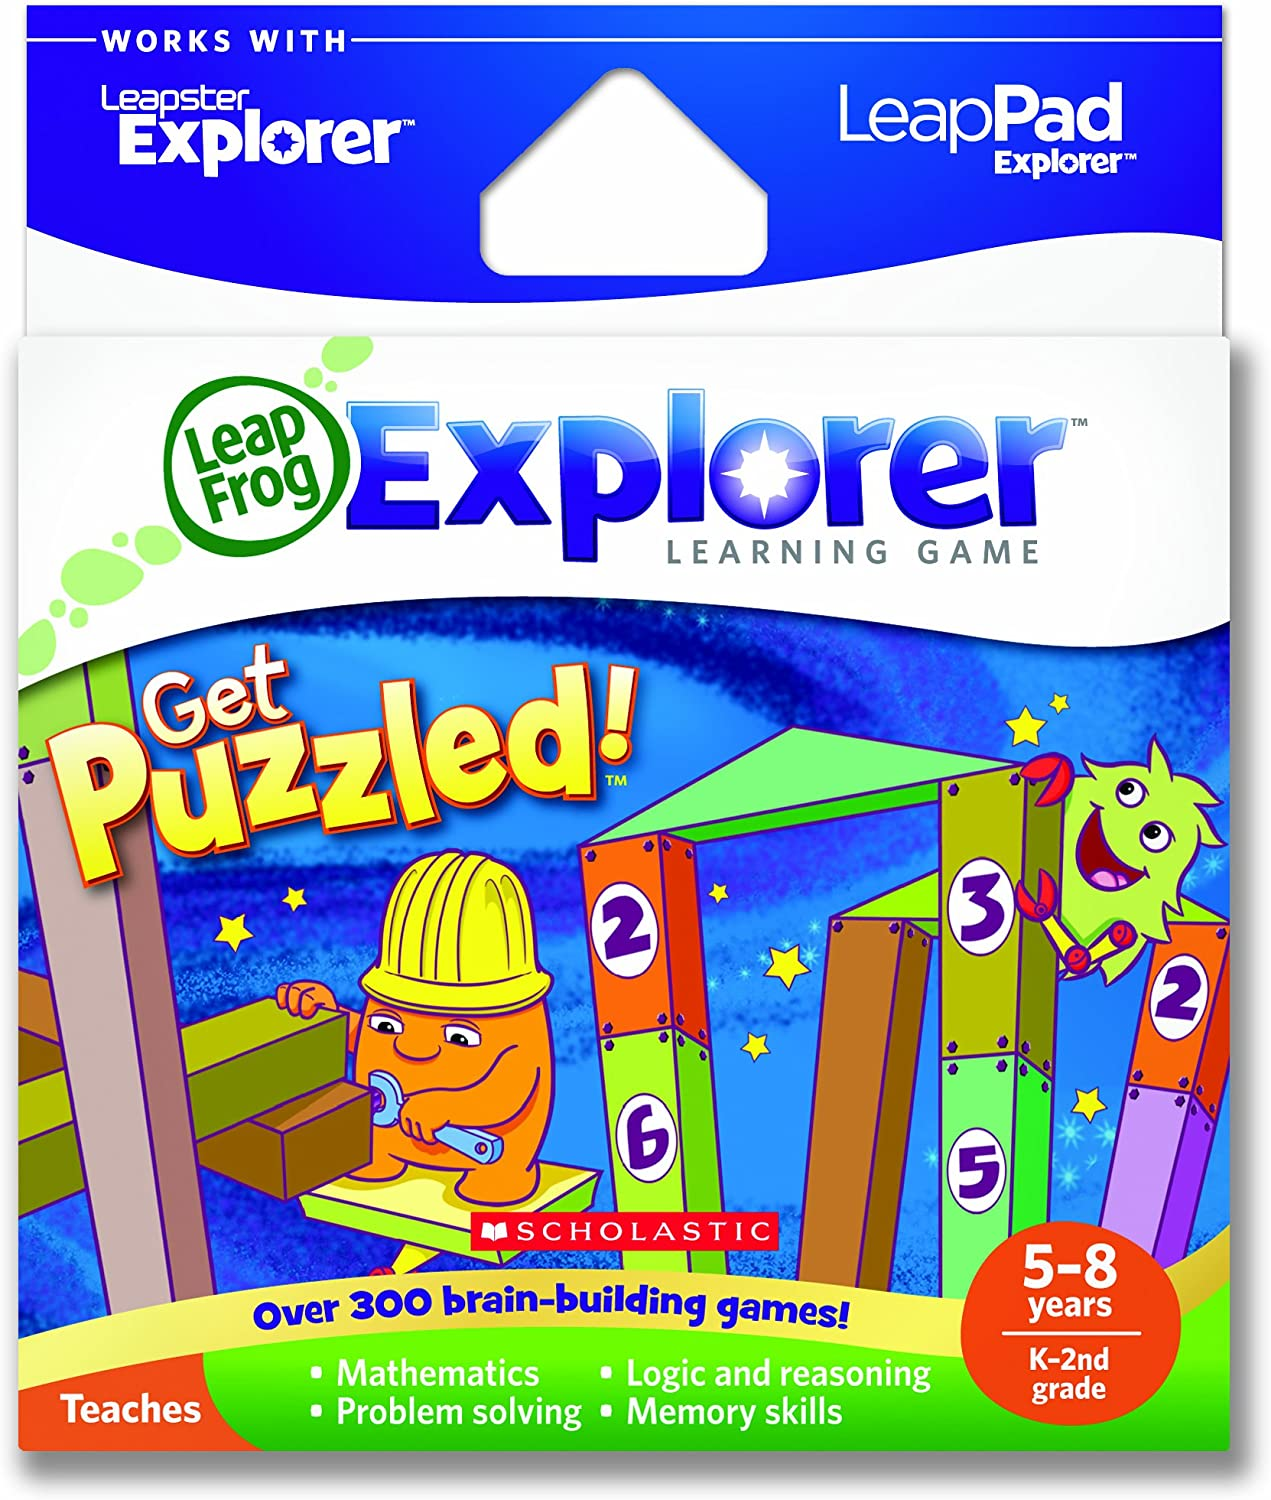 Leapster explorer games work in leapster 2 sex games cancun feature 2 cast